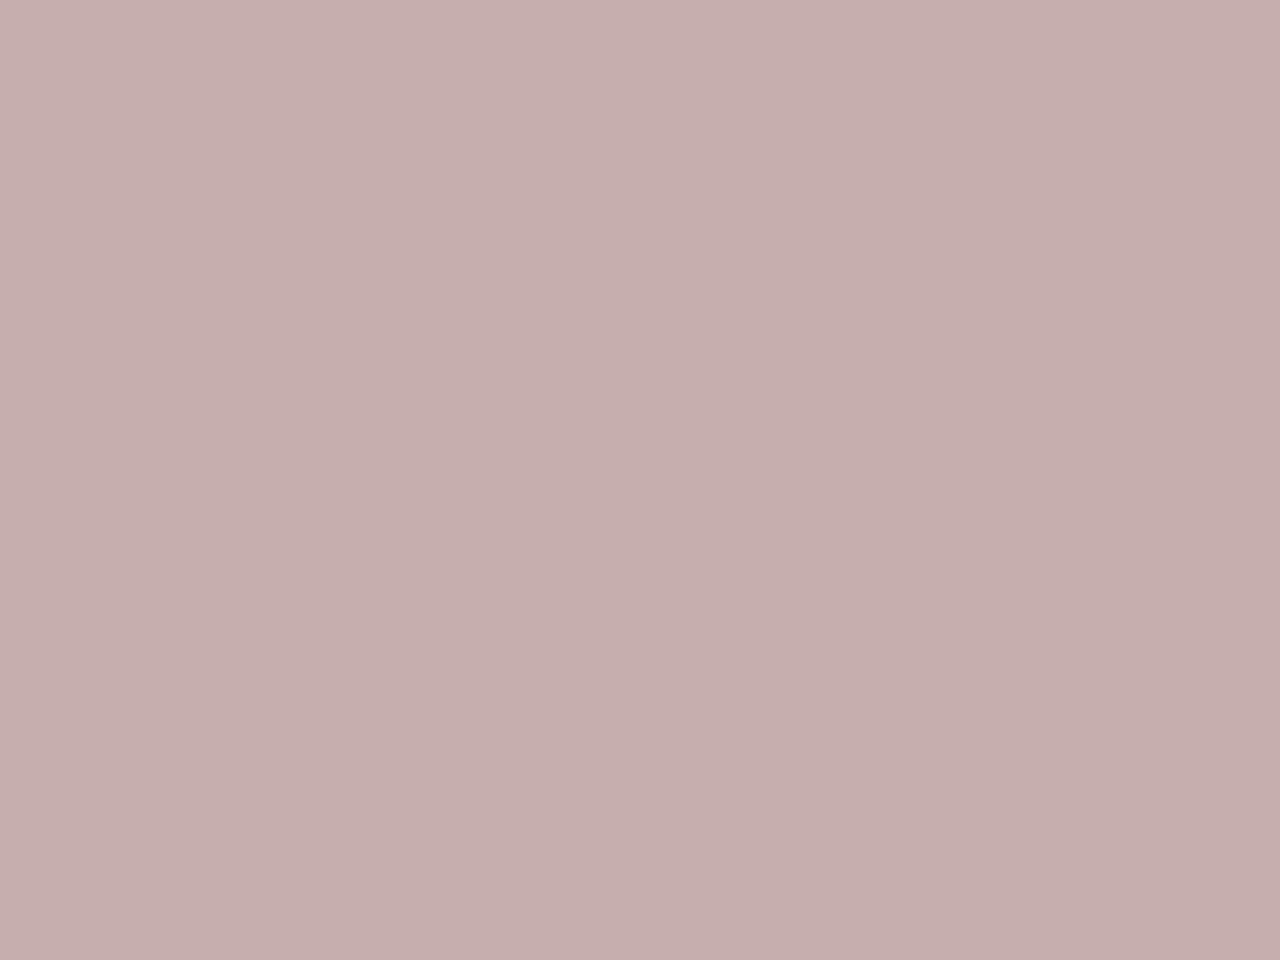 1280x960 Silver Pink Solid Color Background